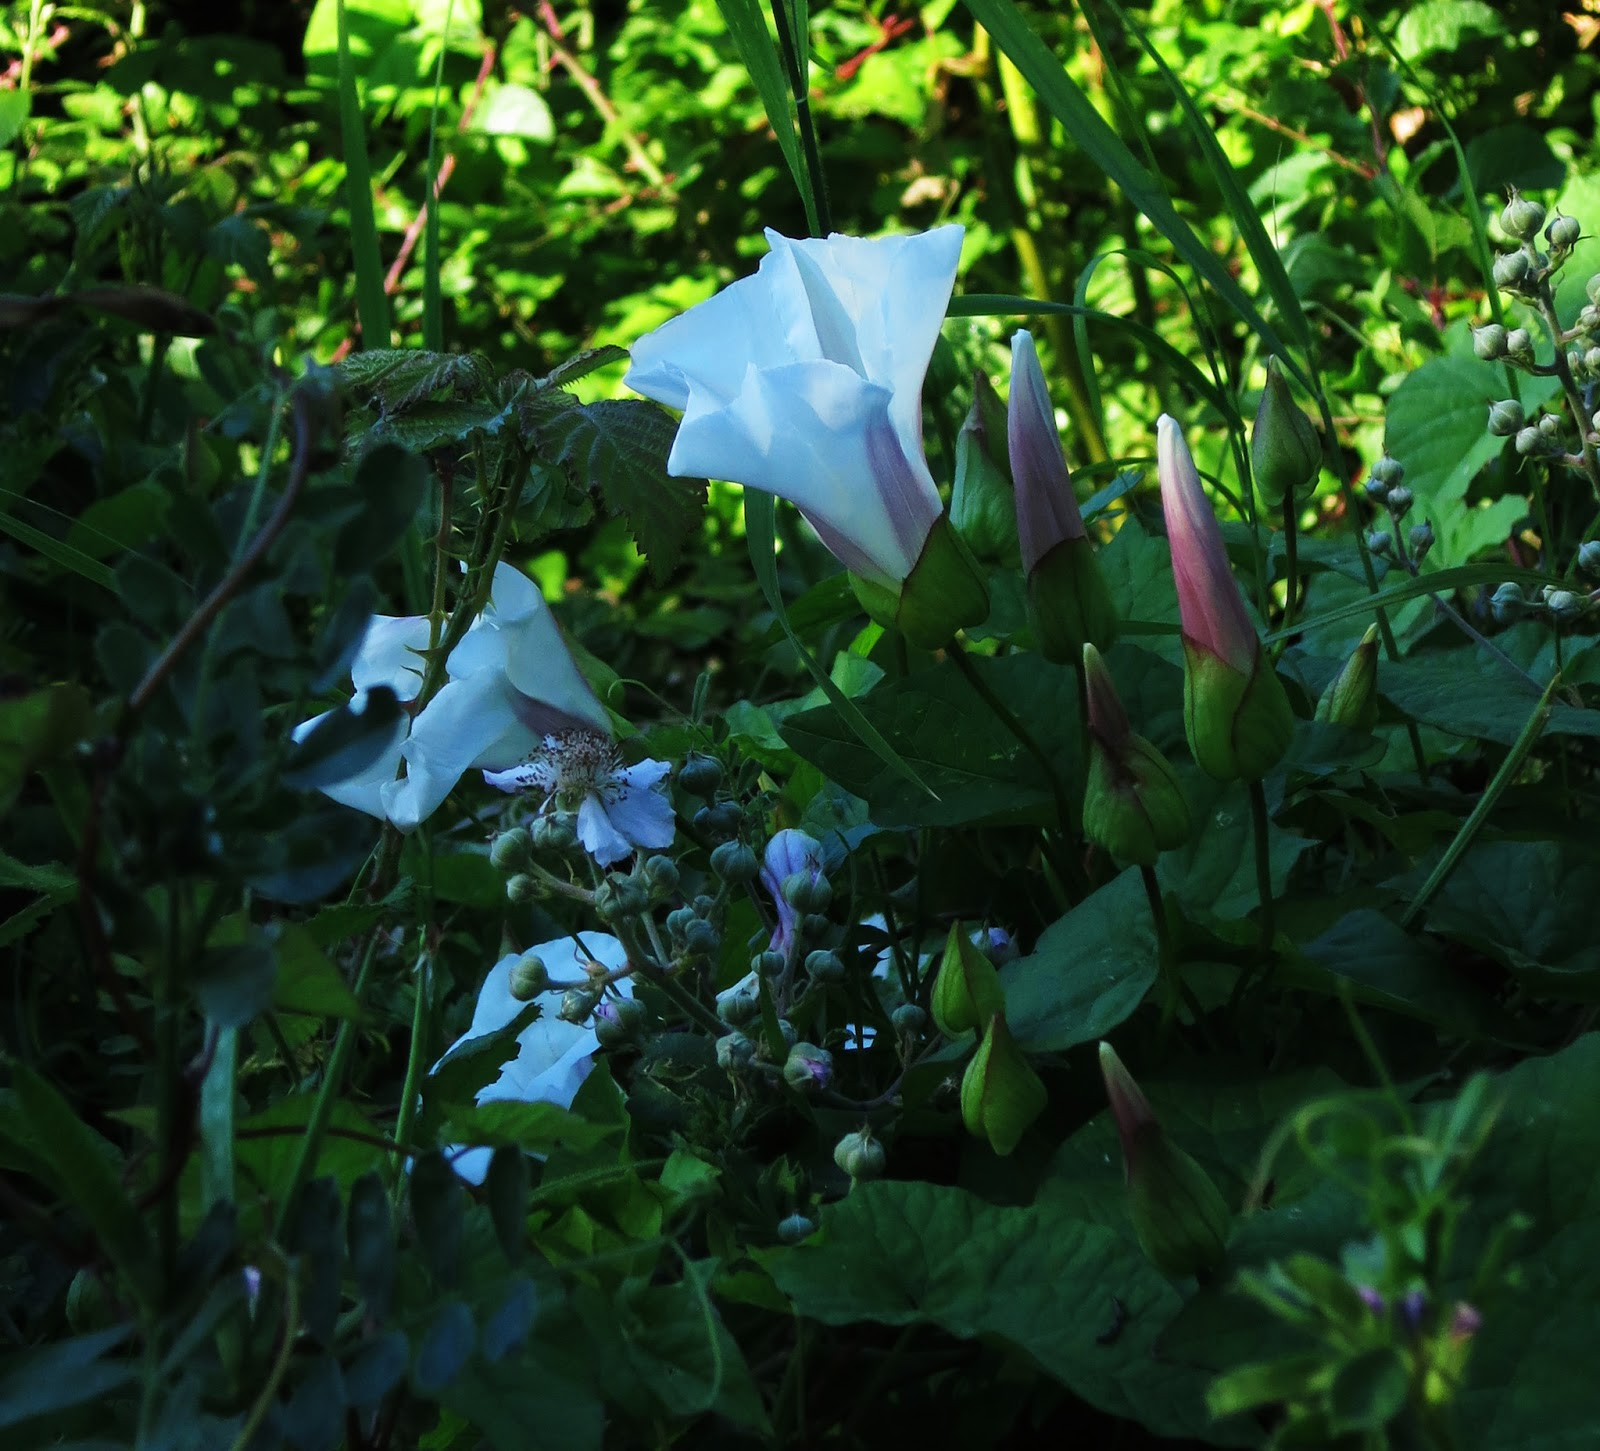 Bindweed flower closing as shadow falls across it